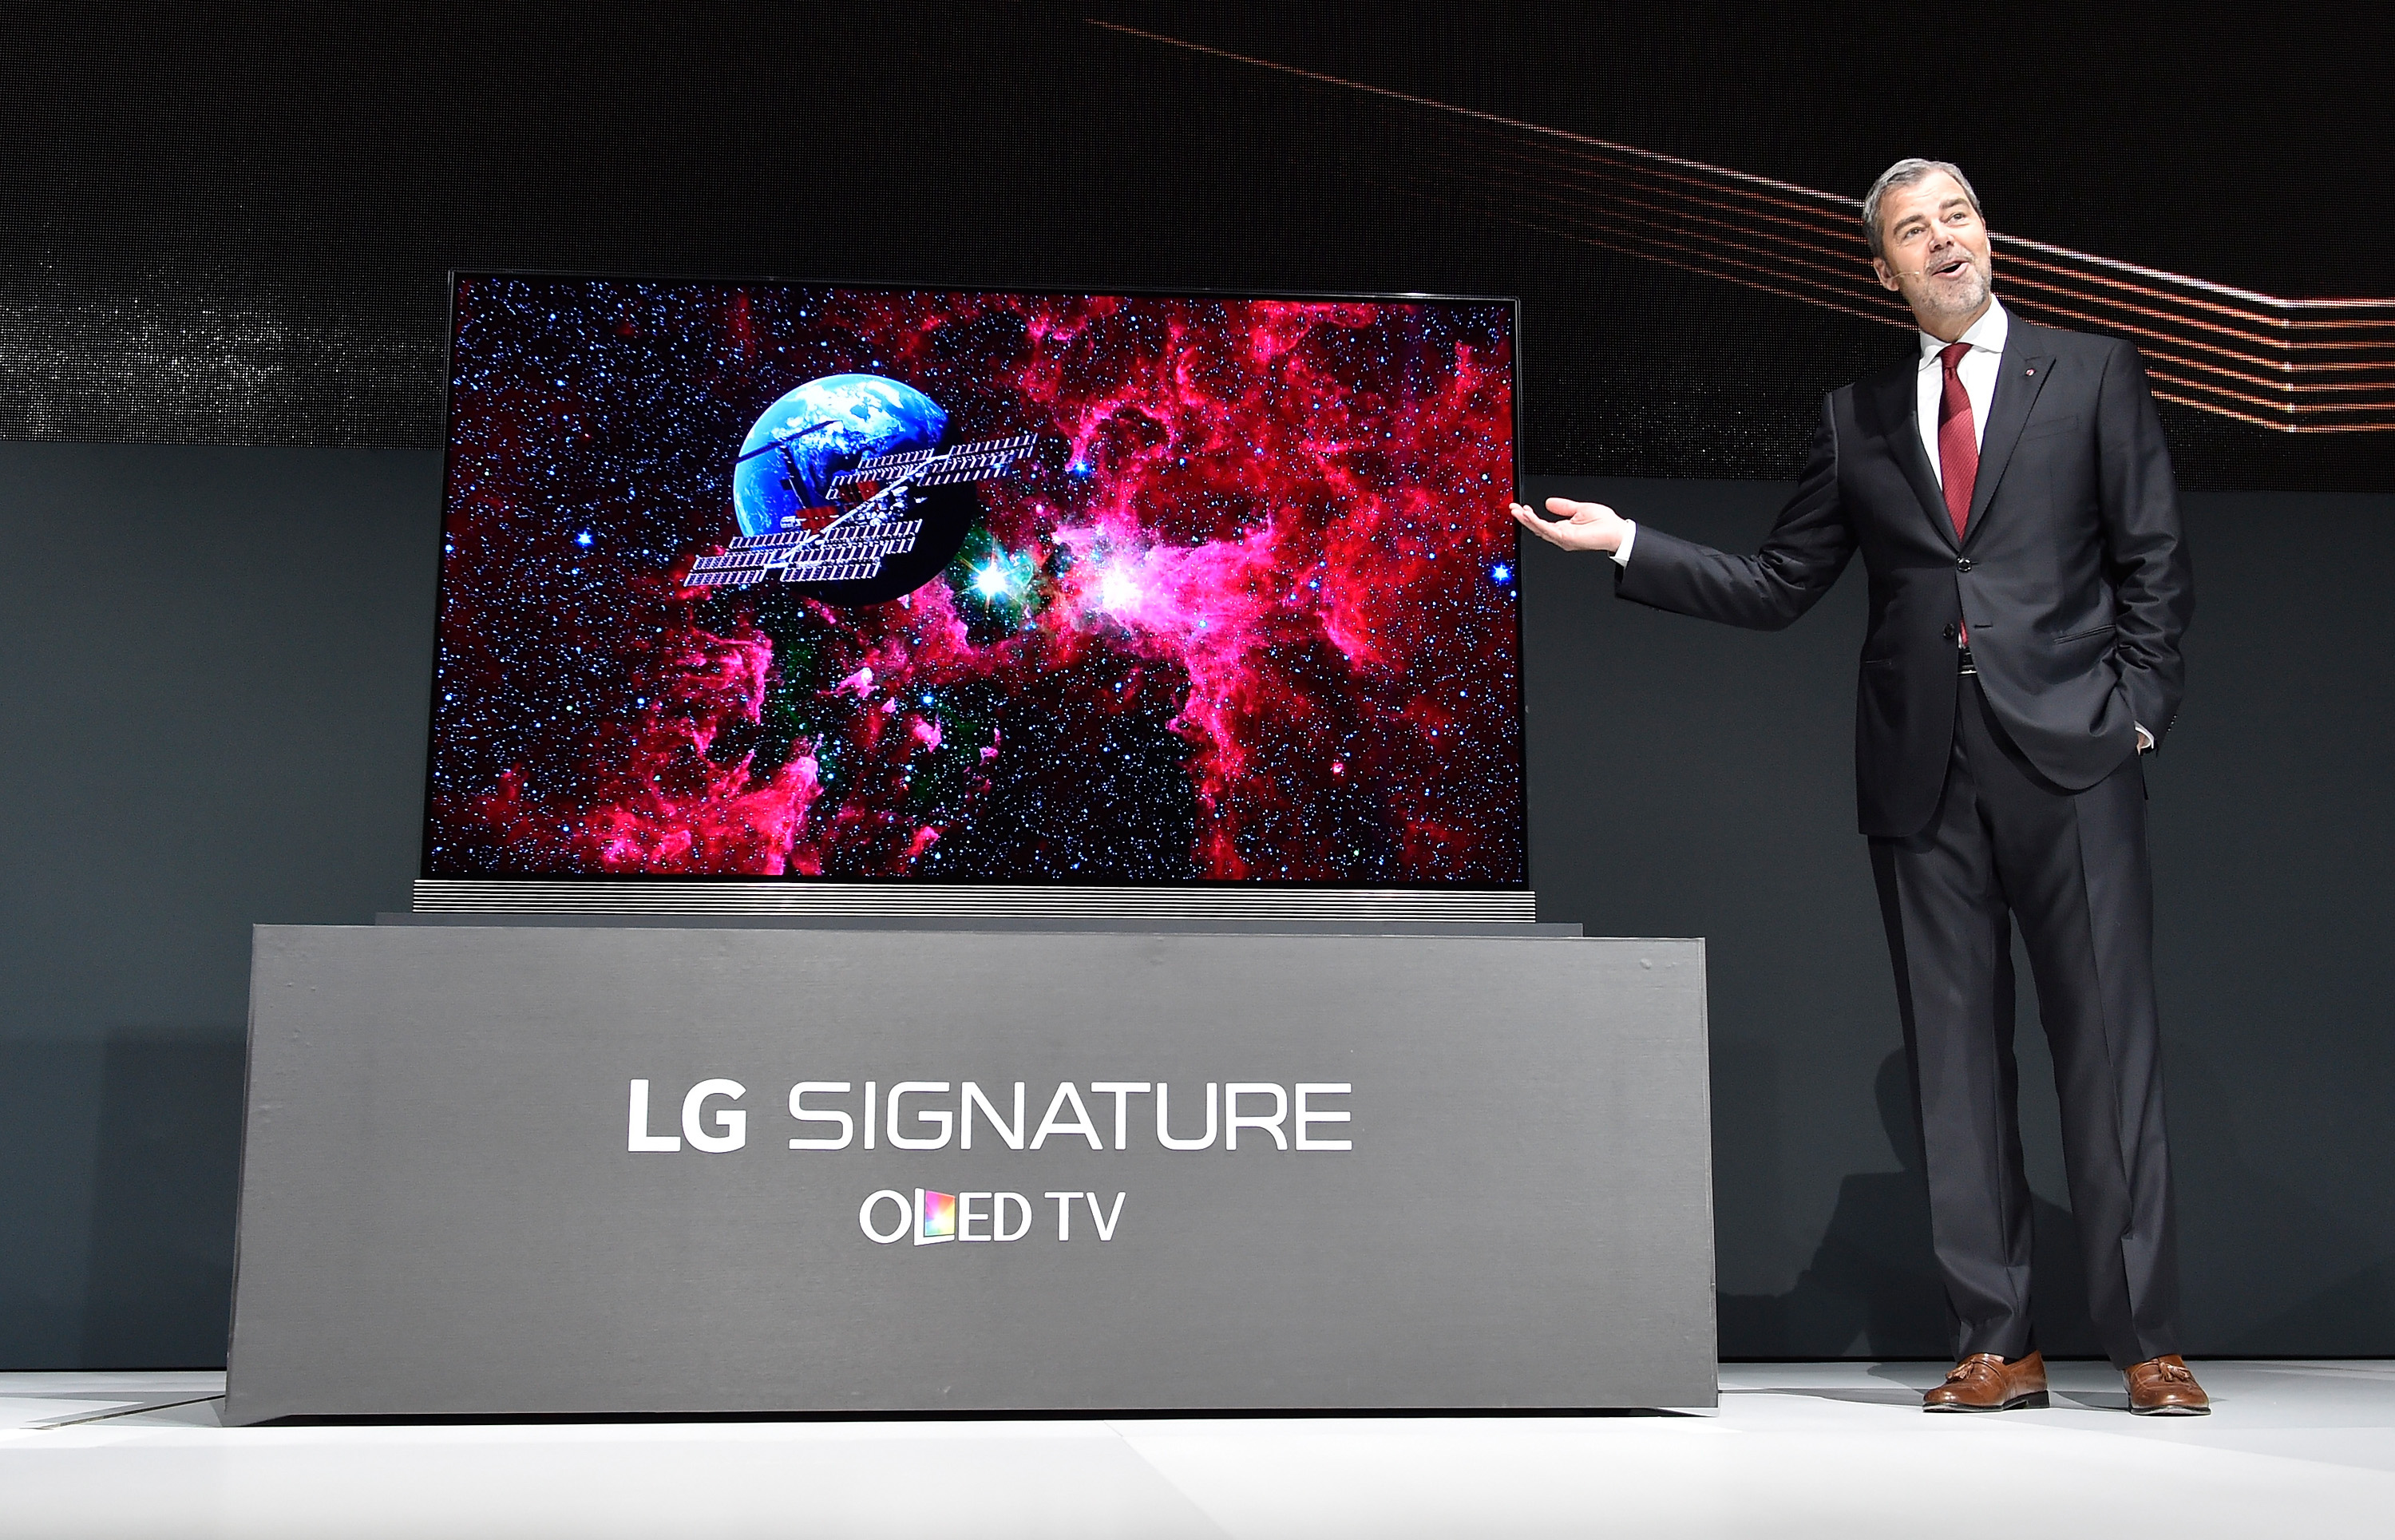 LG Electronics USA Vice President of Marketing David VanderWaal gestures as he displays the LG Signature 77 inch 4K HDR-enabled OLED TV during a press event for CES 2016 at the Mandalay Bay Convention Center on January 5, 2016 in Las Vegas, Nevada.